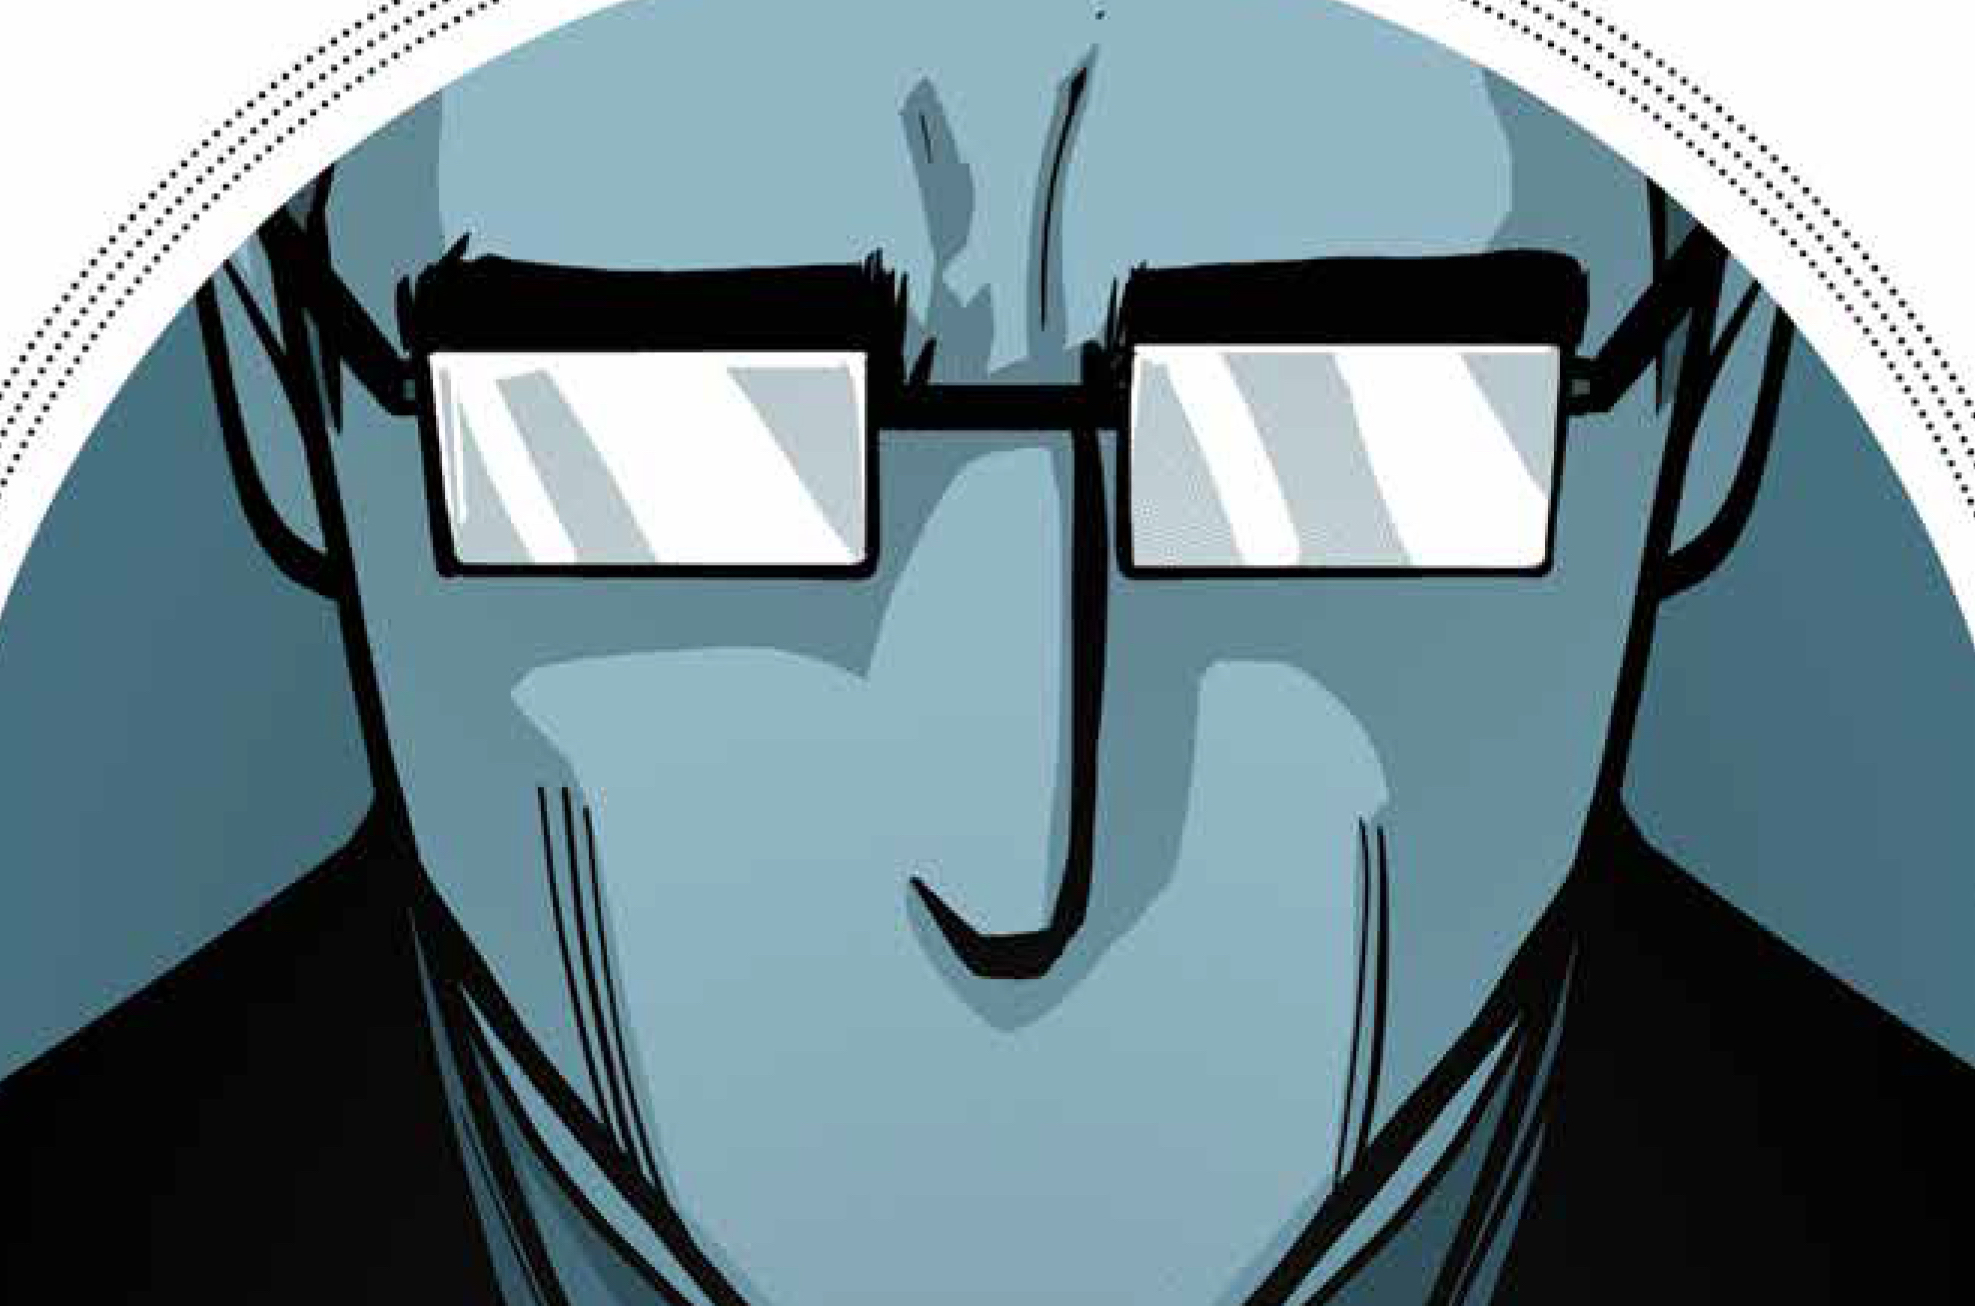 Archaia Preview: The Joyners #1